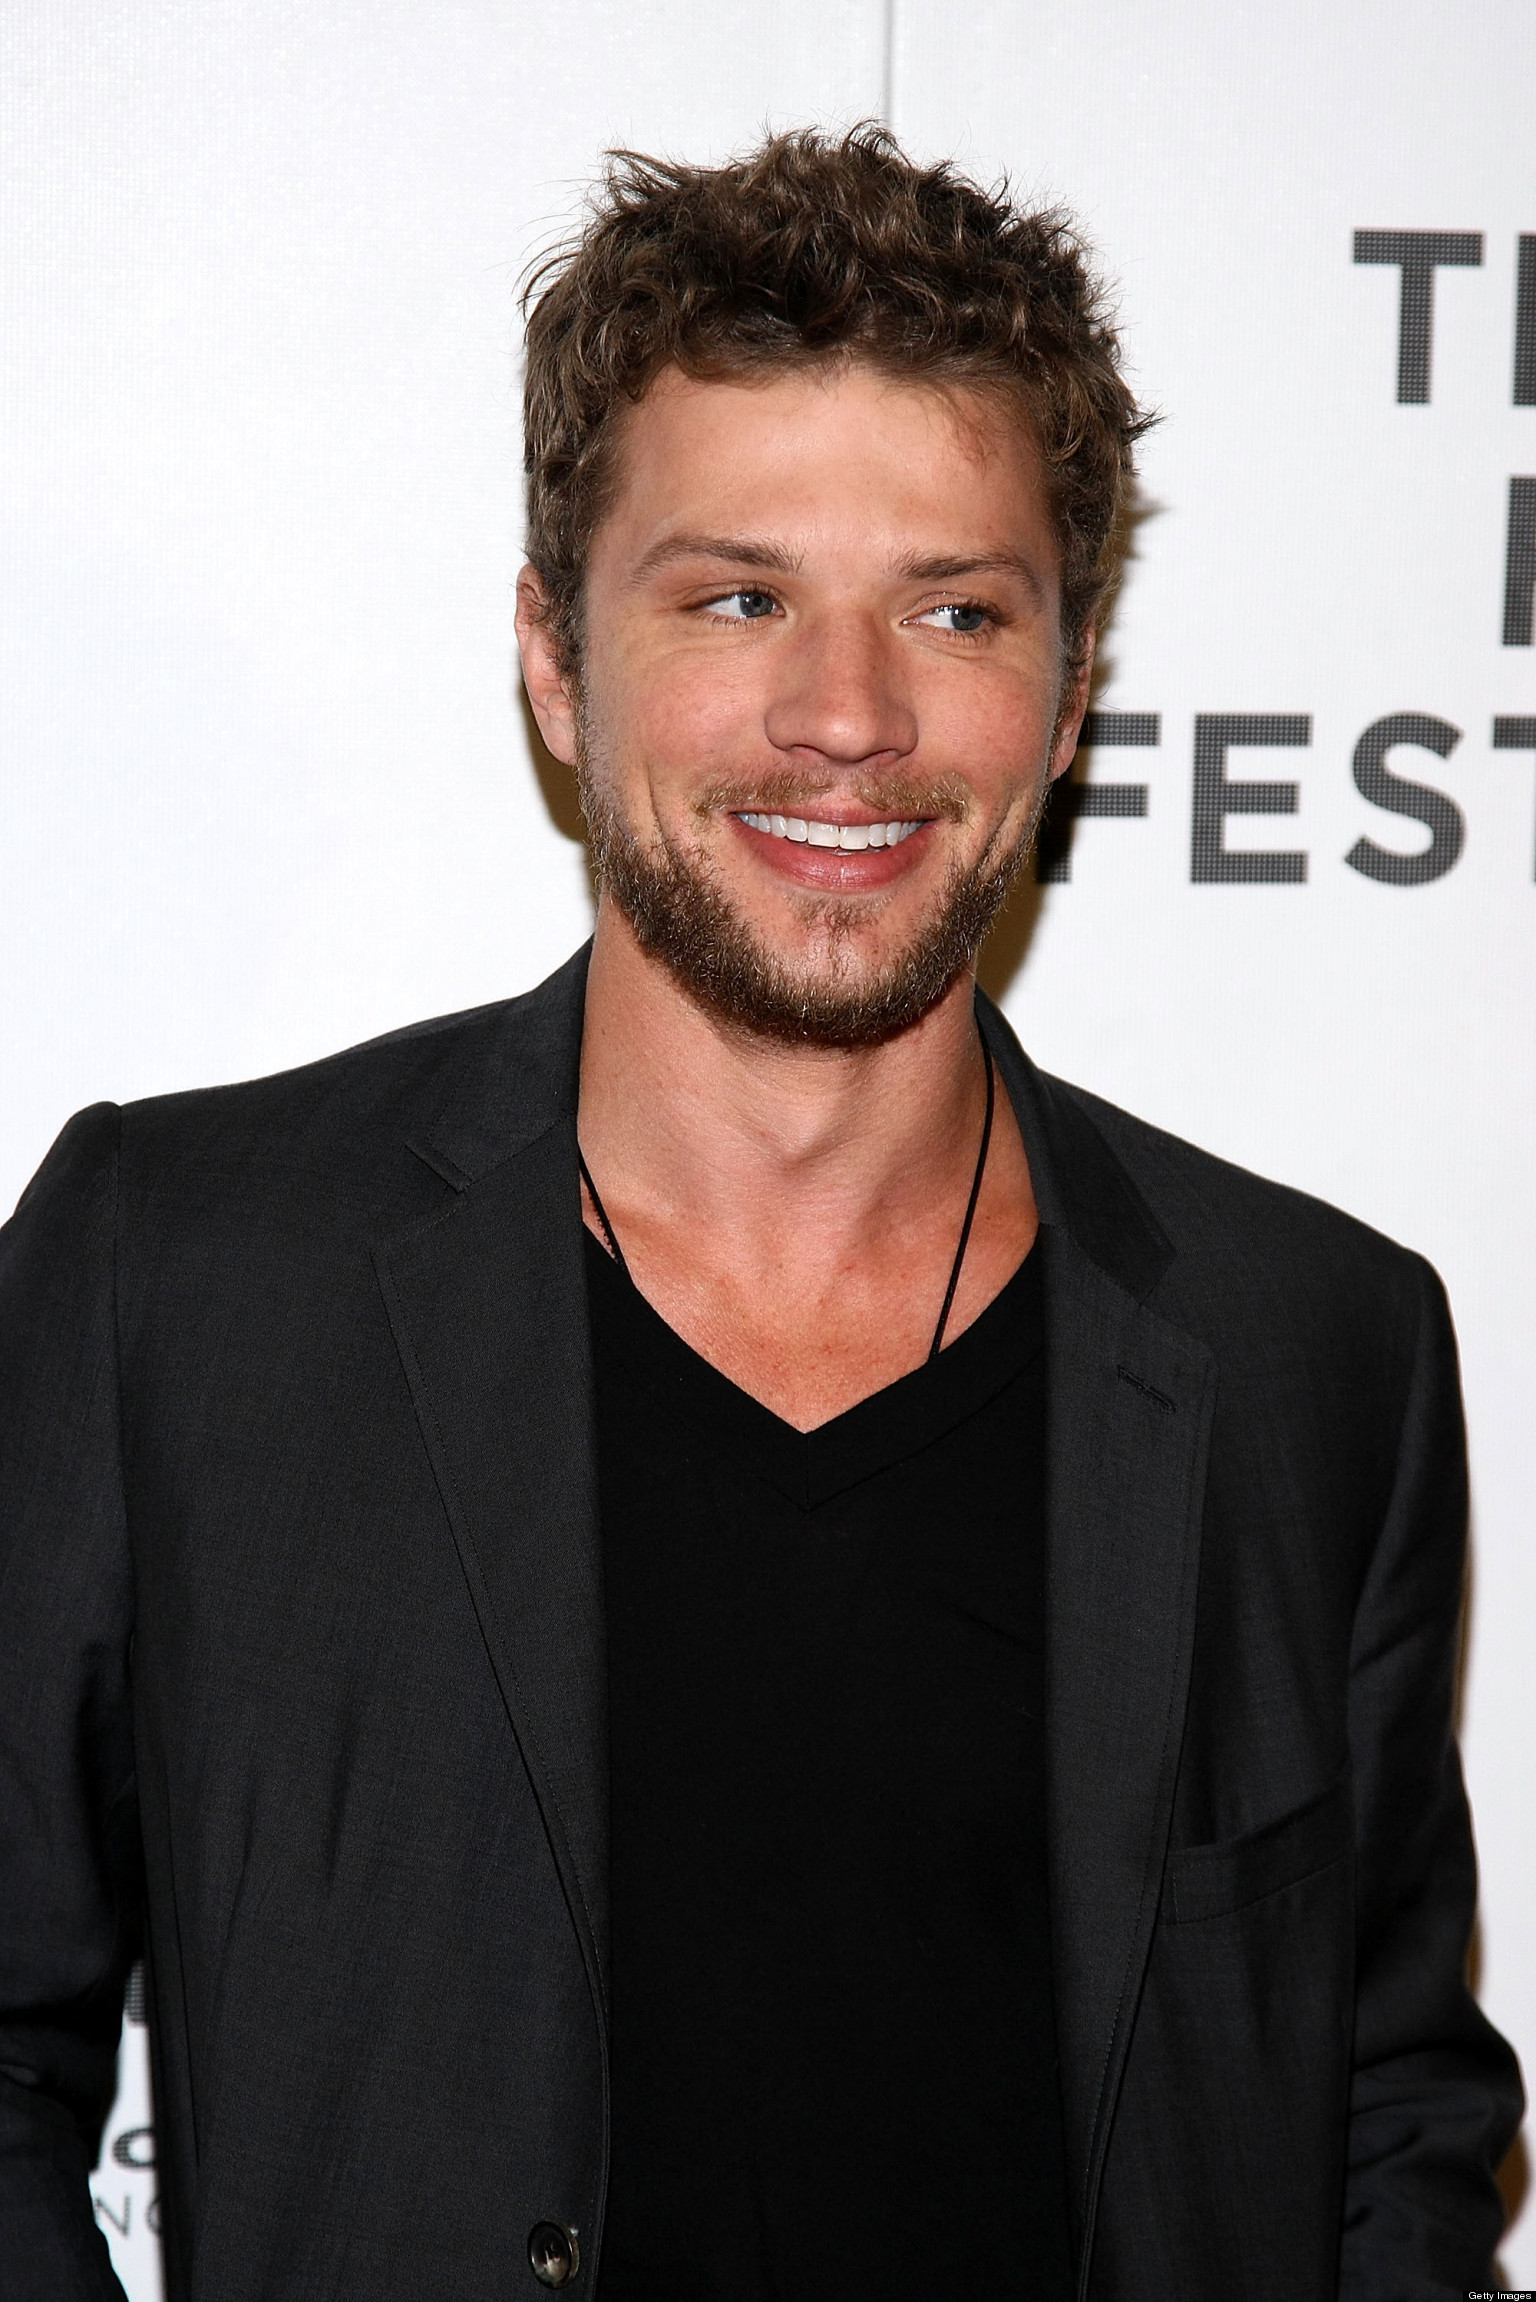 Ryan Phillippe Home Sold For A Loss At $6 Million (PHOTOS) Ryan Phillippe Politics